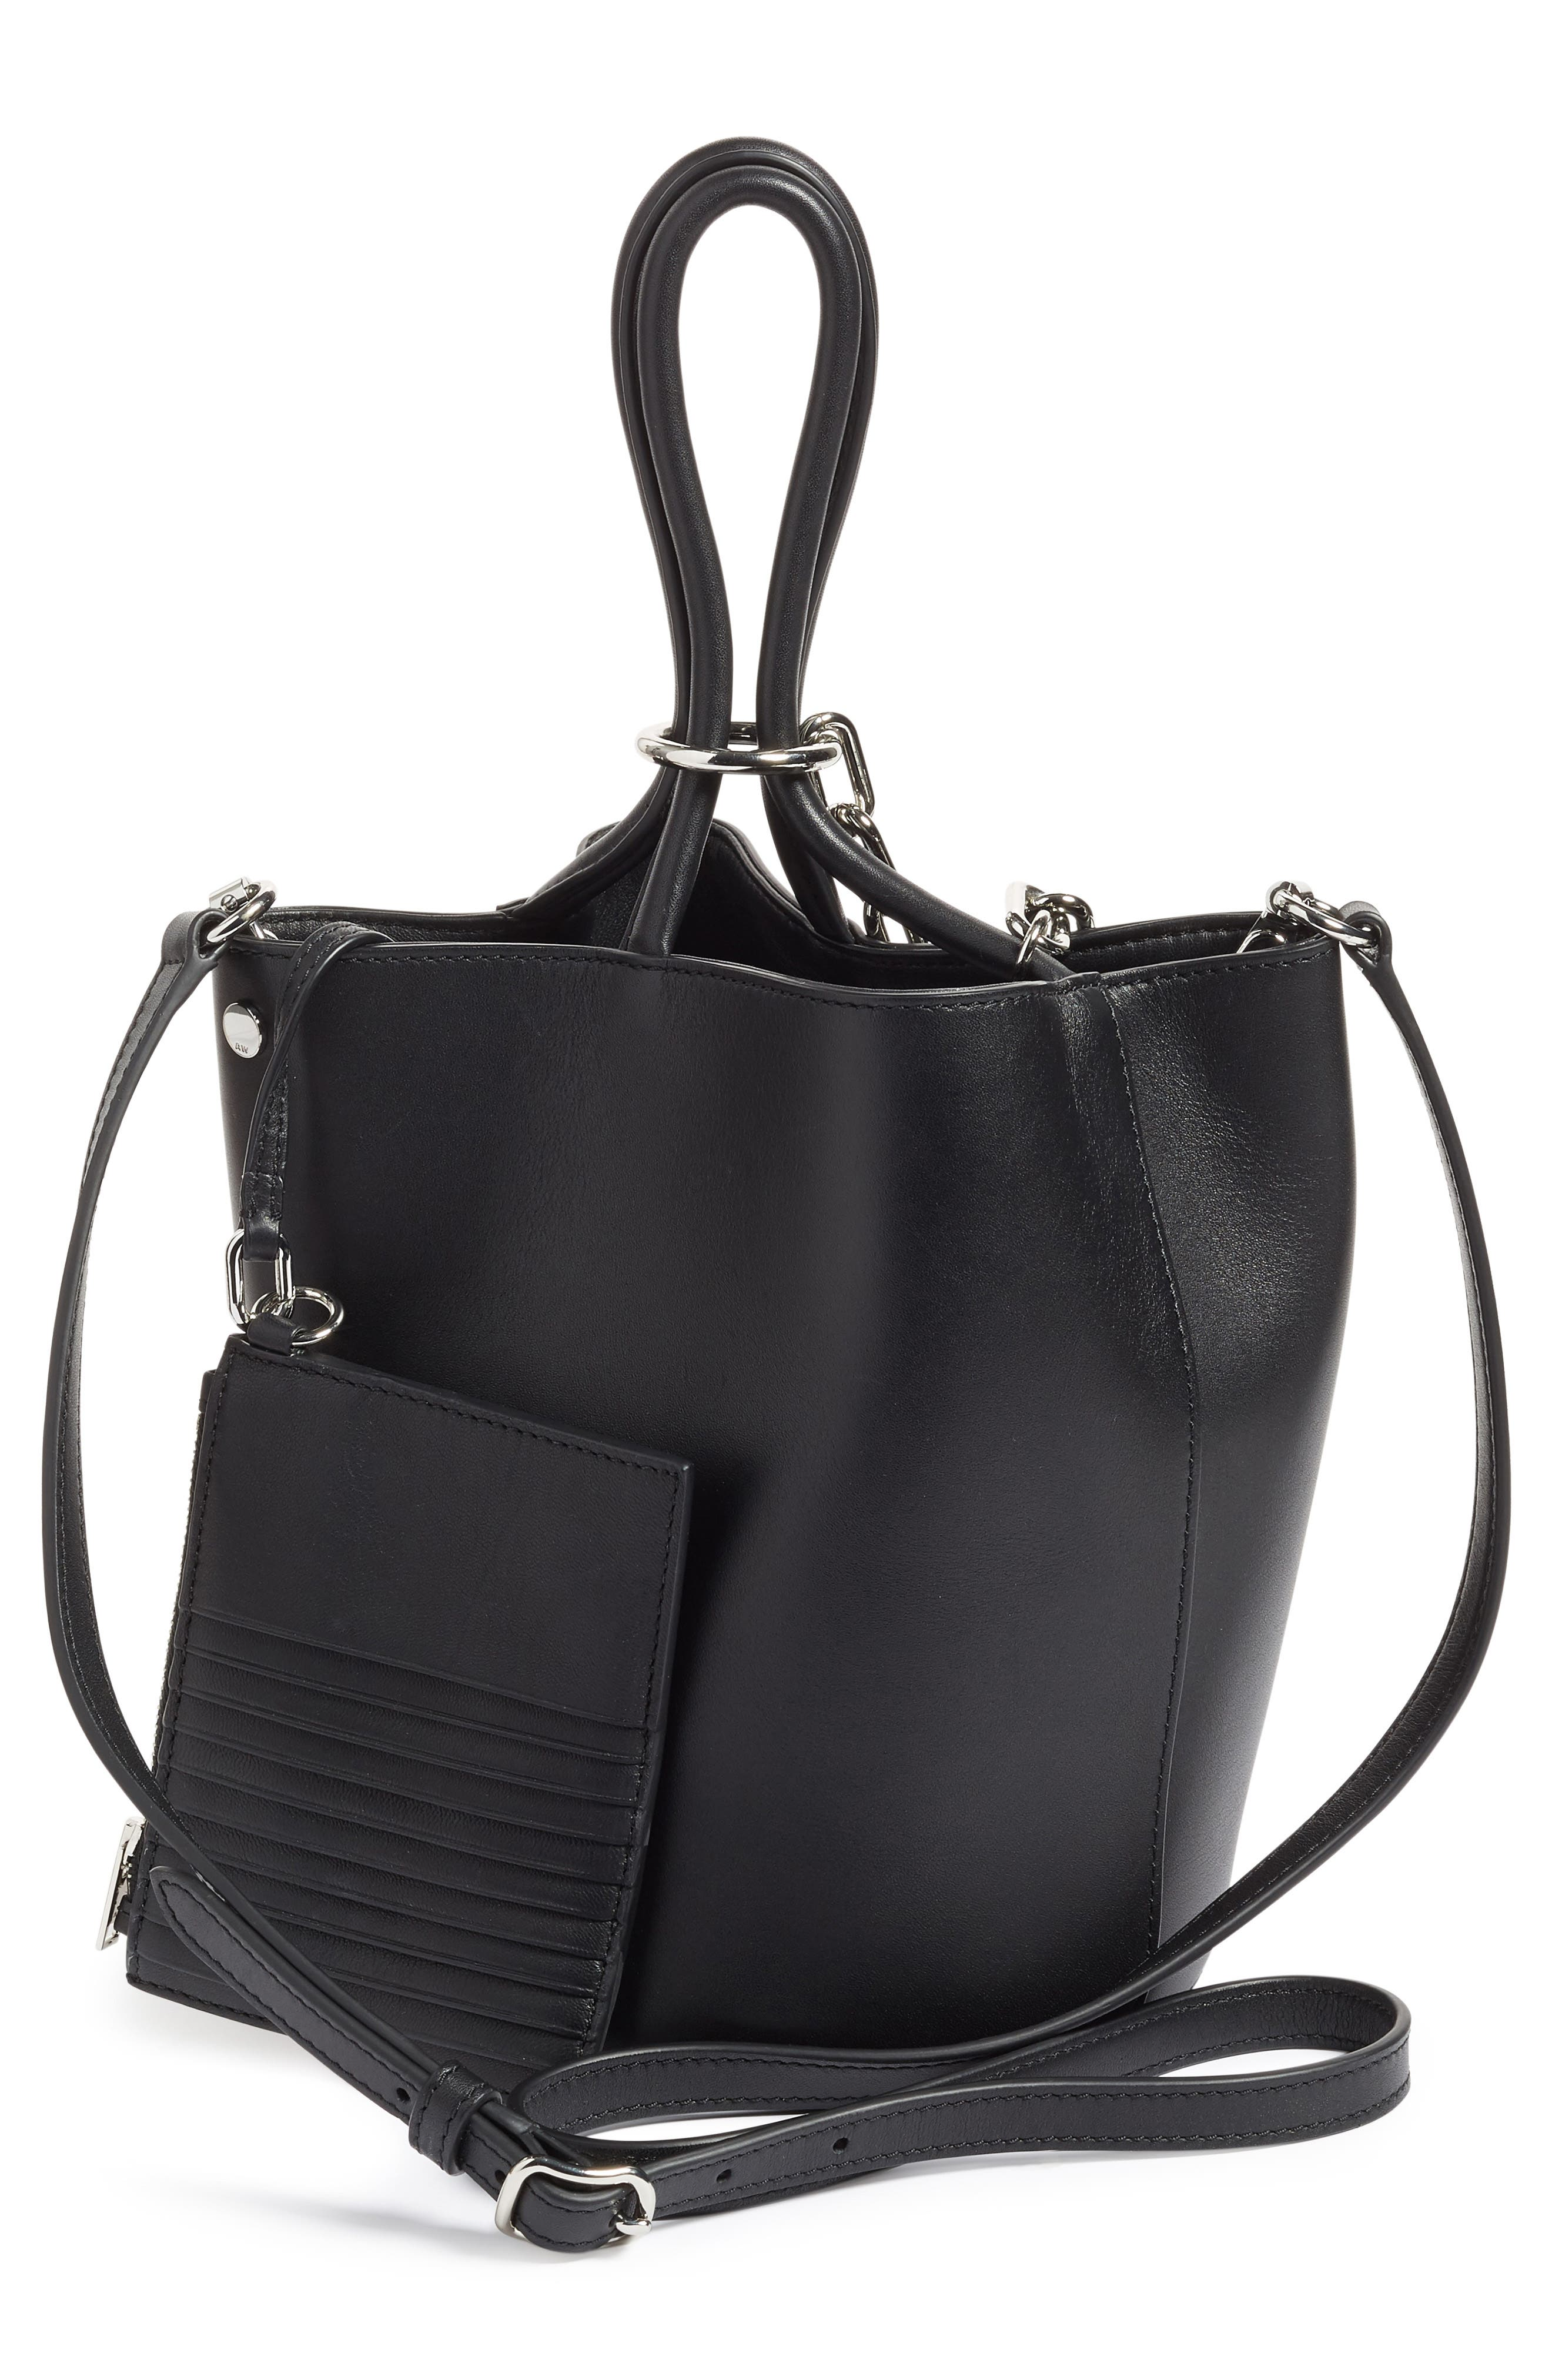 Roxy Leather Bucket Bag,                             Alternate thumbnail 3, color,